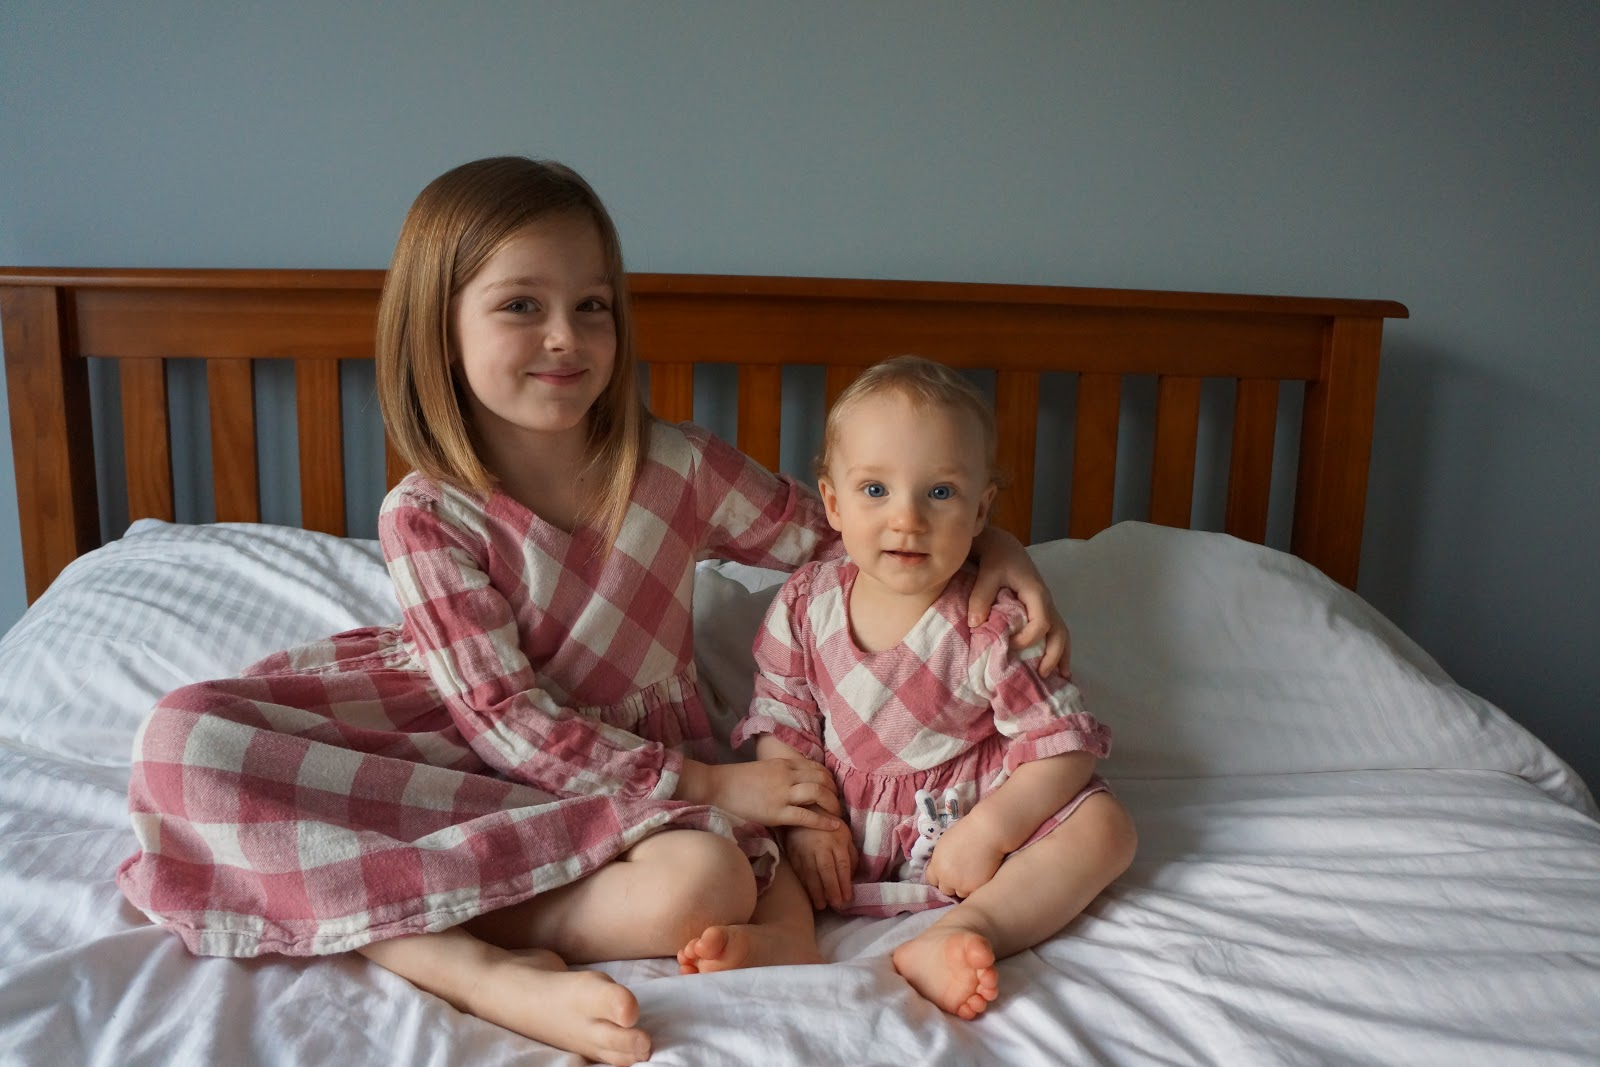 baby and sister in matching outfits smiling on bed